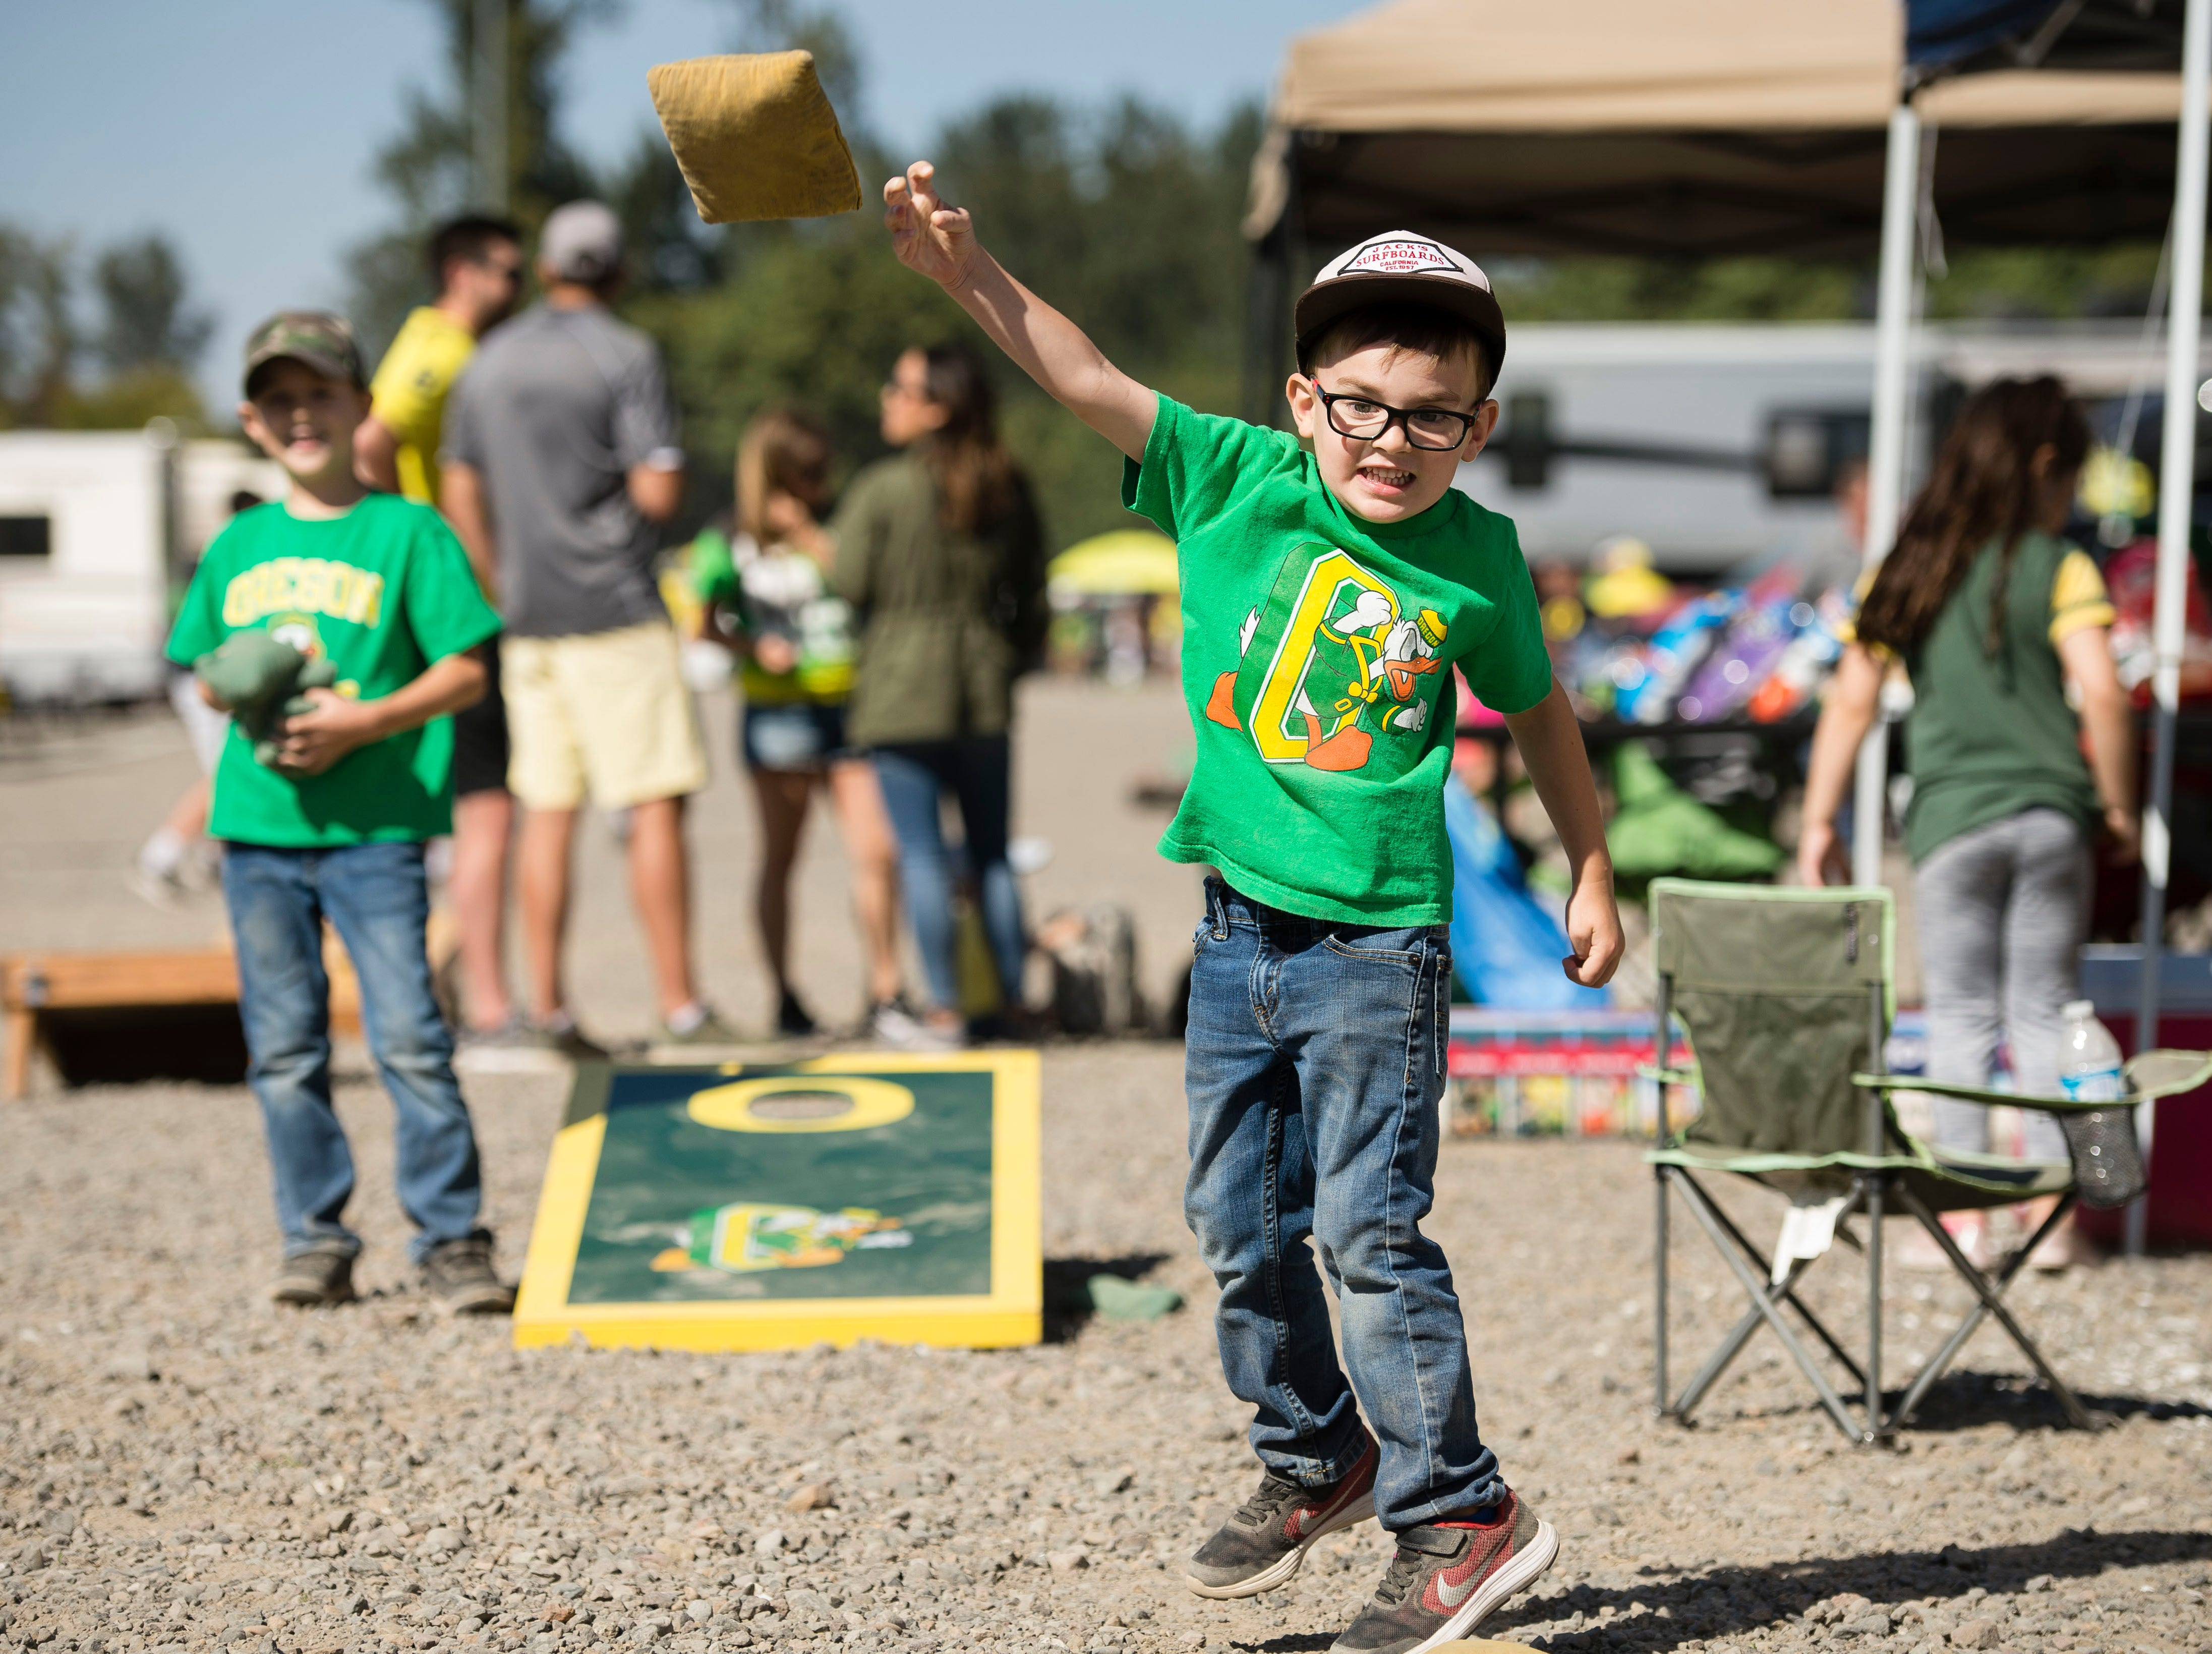 Cash Schimmer, 4, of Eugene, Oregon, plays a game of cornhole with his family before the start of a game between the Oregon Ducks and Bowling Green Flacons at Autzen Stadium.